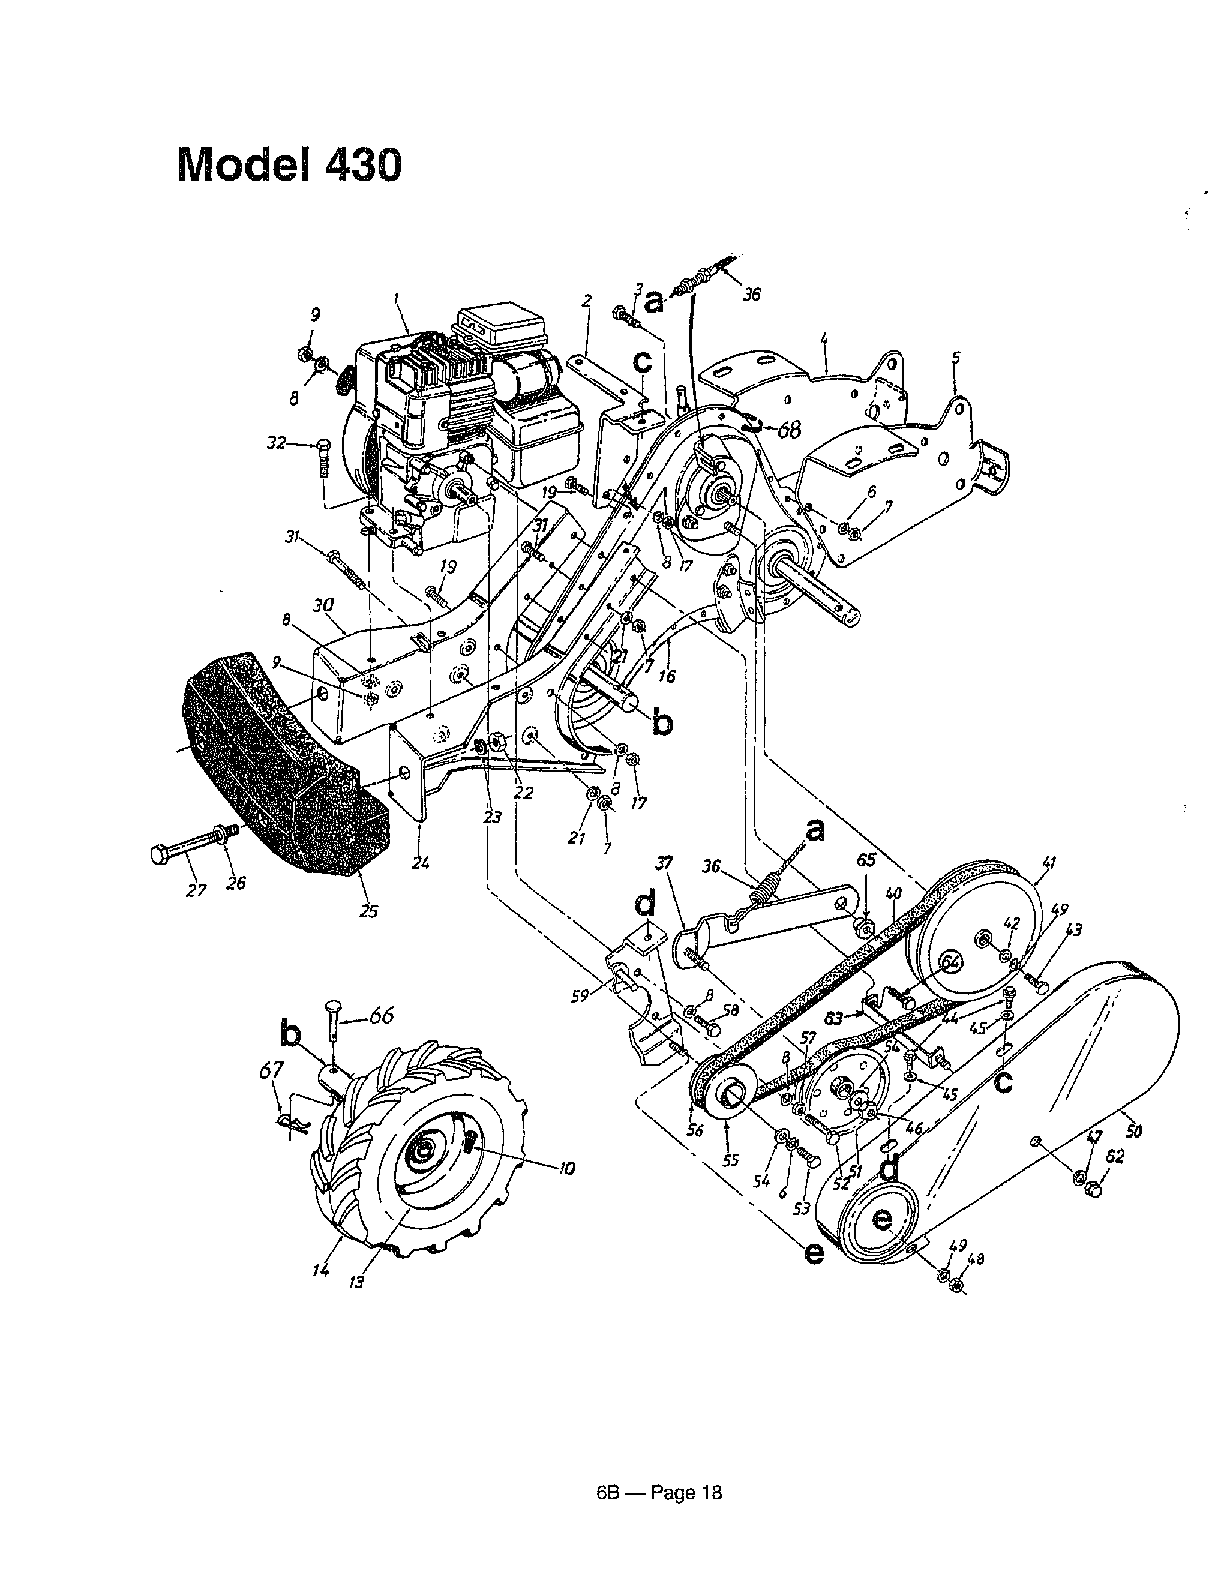 REAR TINE TILLER Page 6 Diagram & Parts List for Model